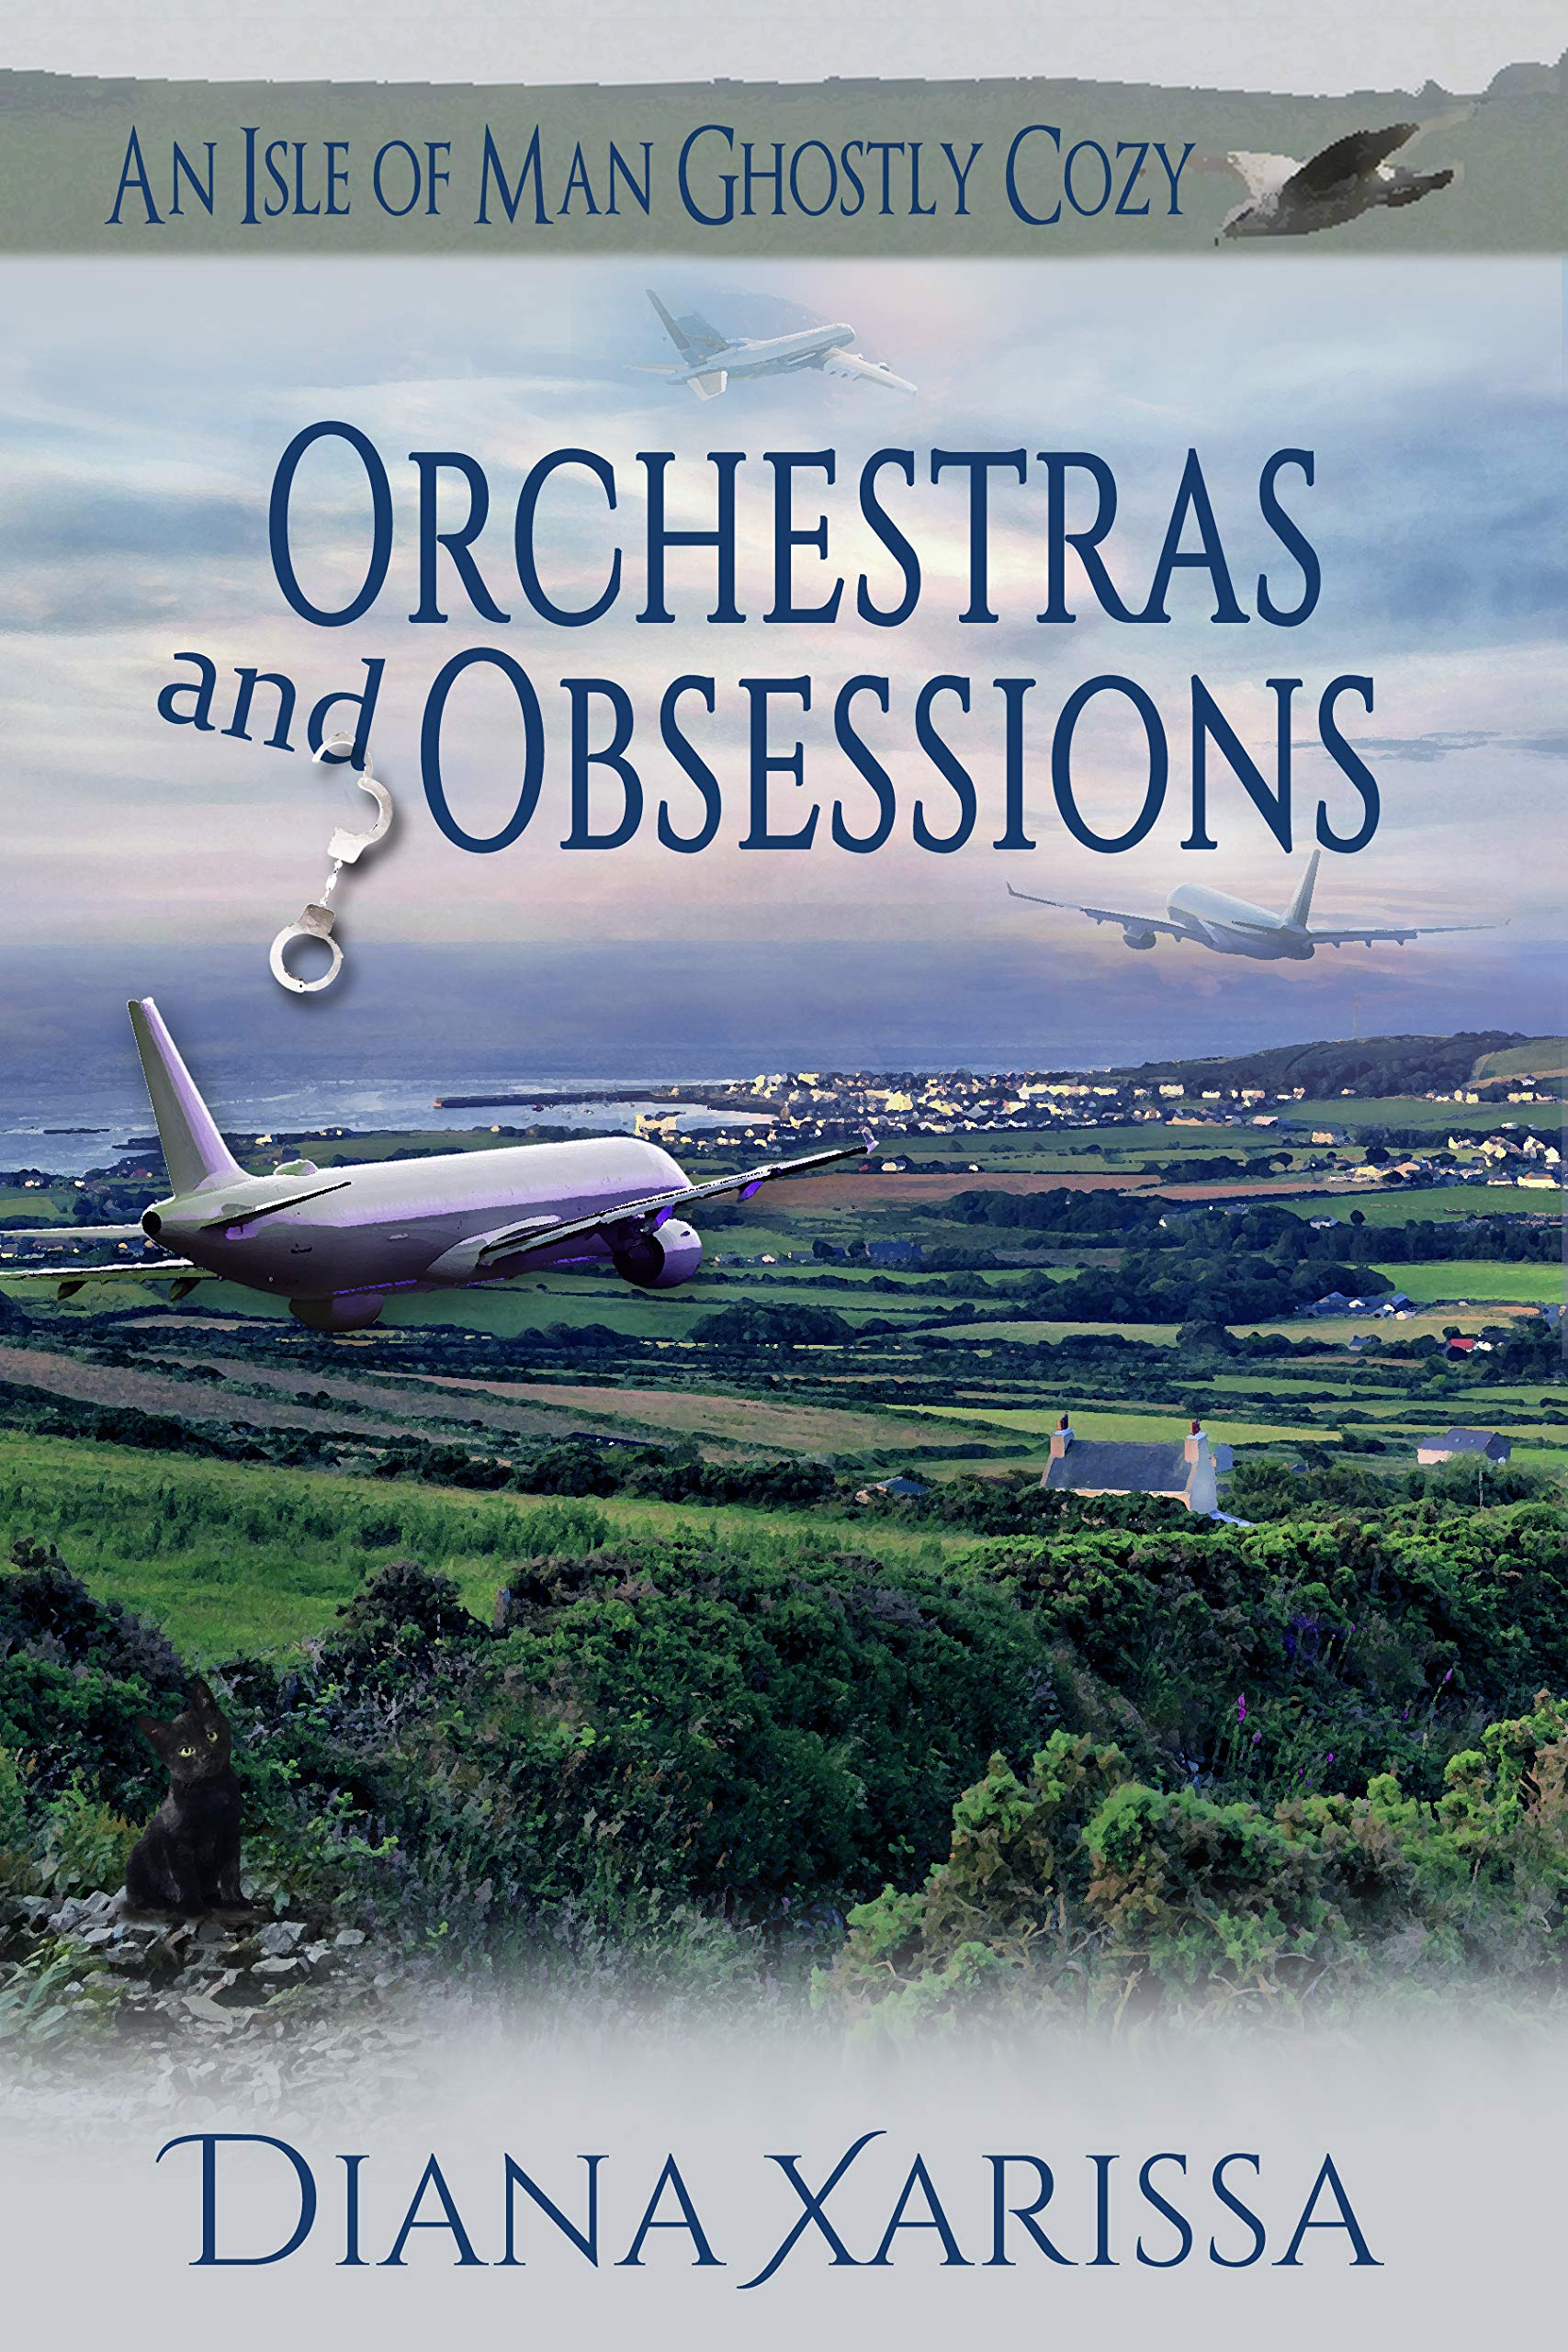 Orchestras and Obsessions (An Isle of Man Ghostly Cozy #15)